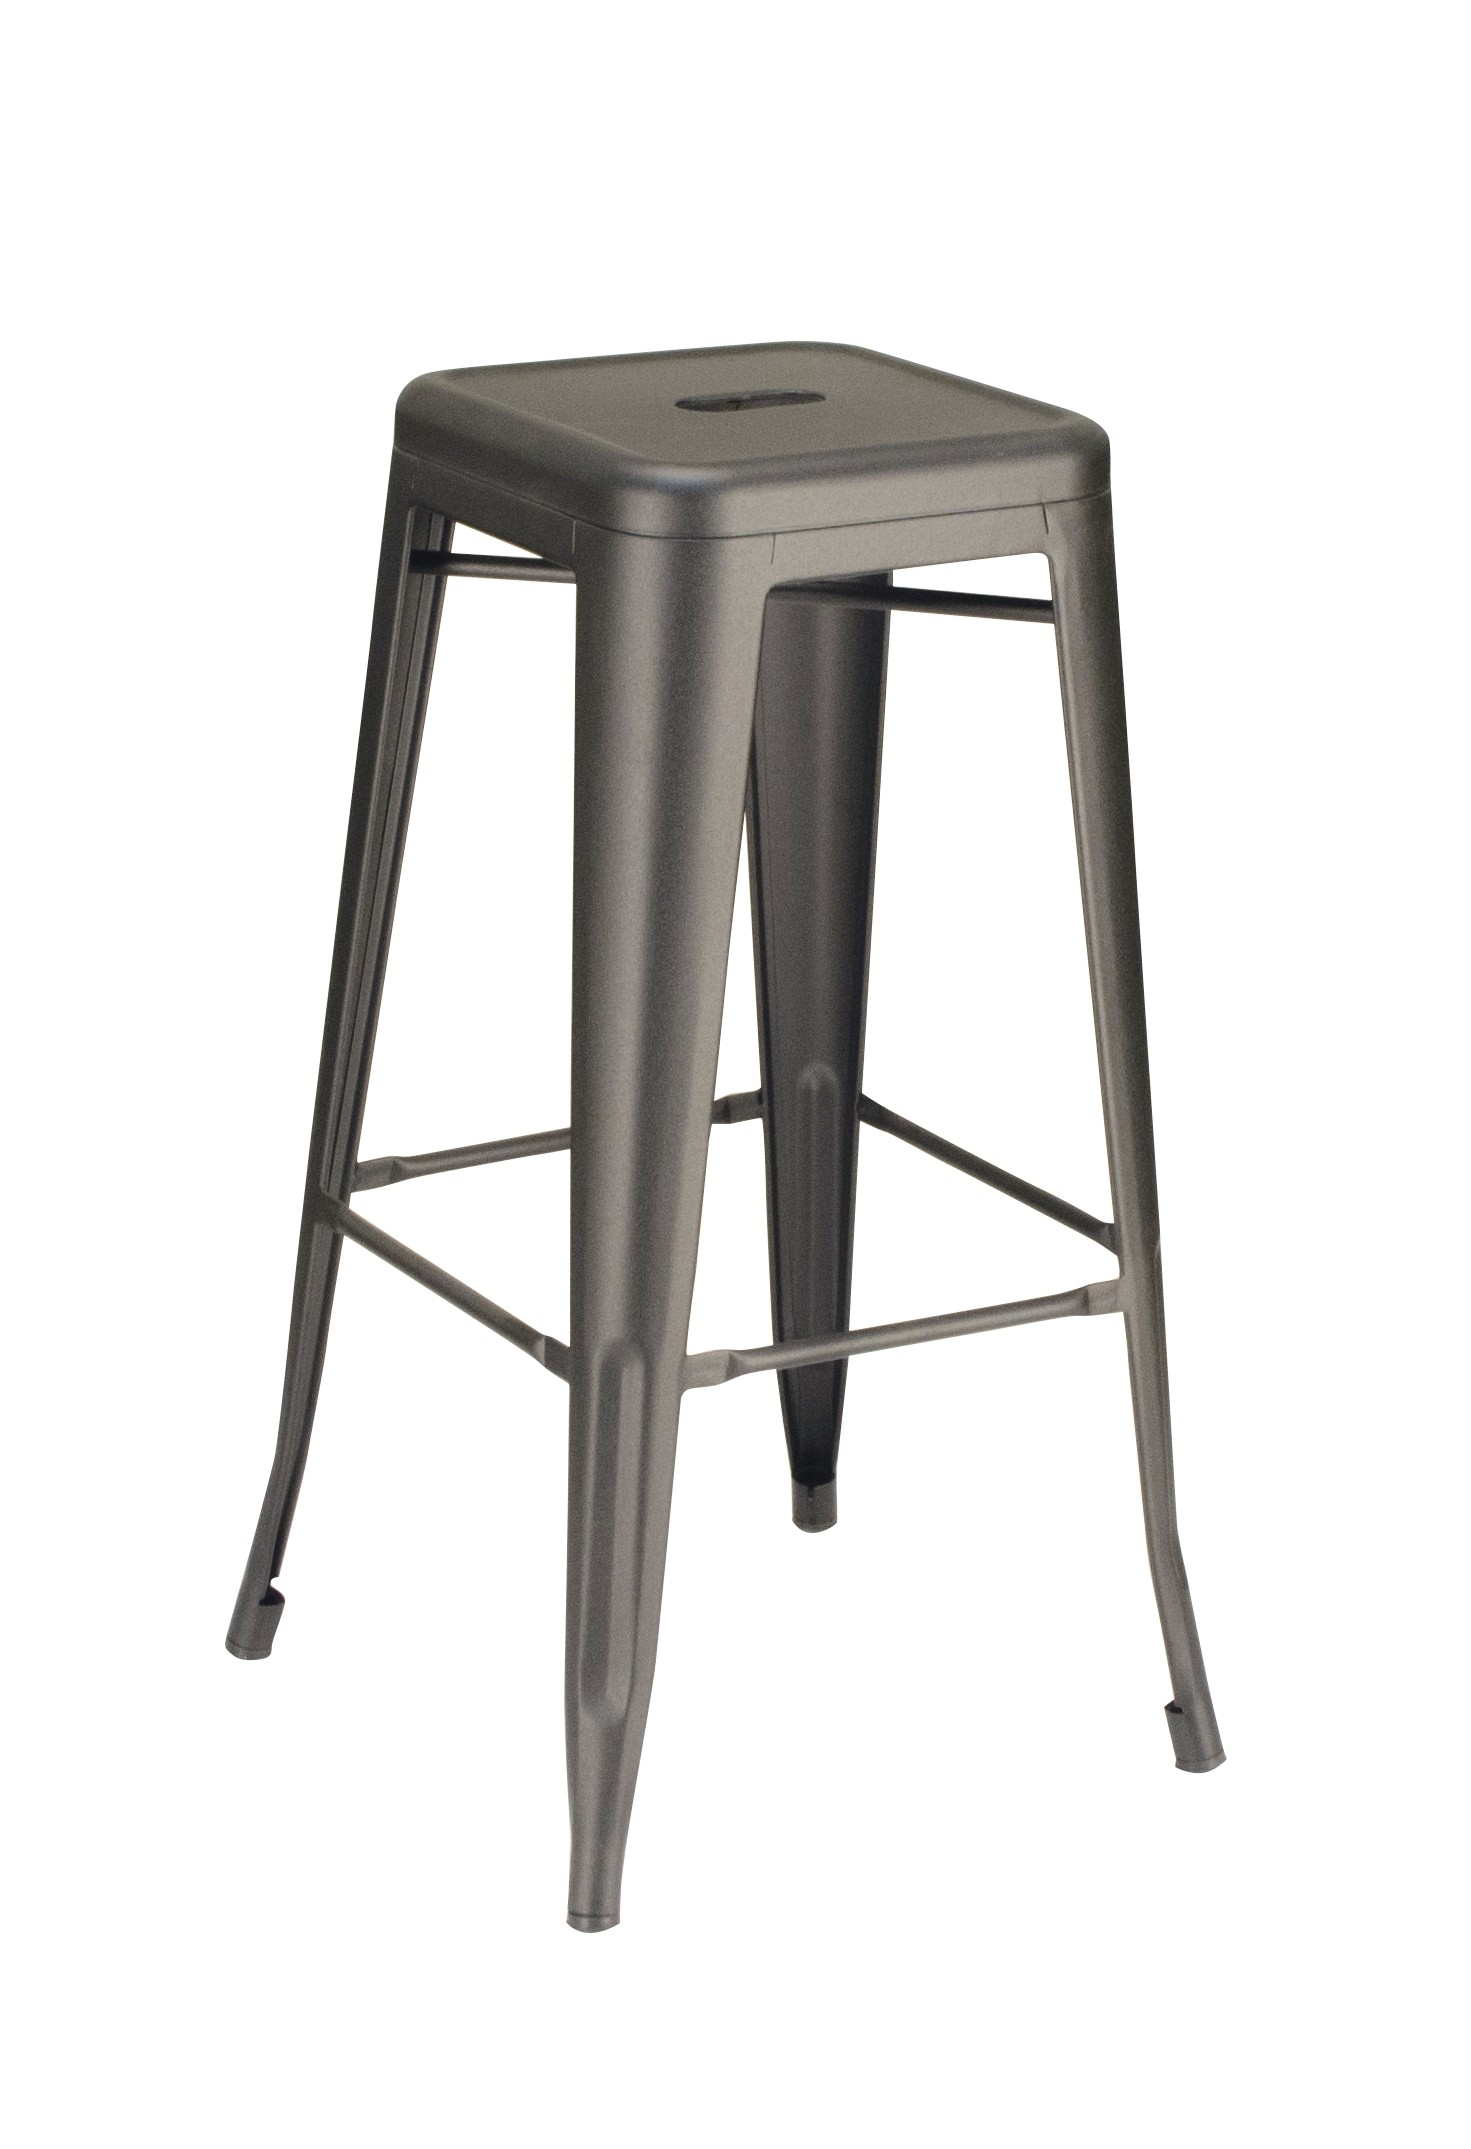 Calais Metal Backless Barstool - Matte Clear Coat